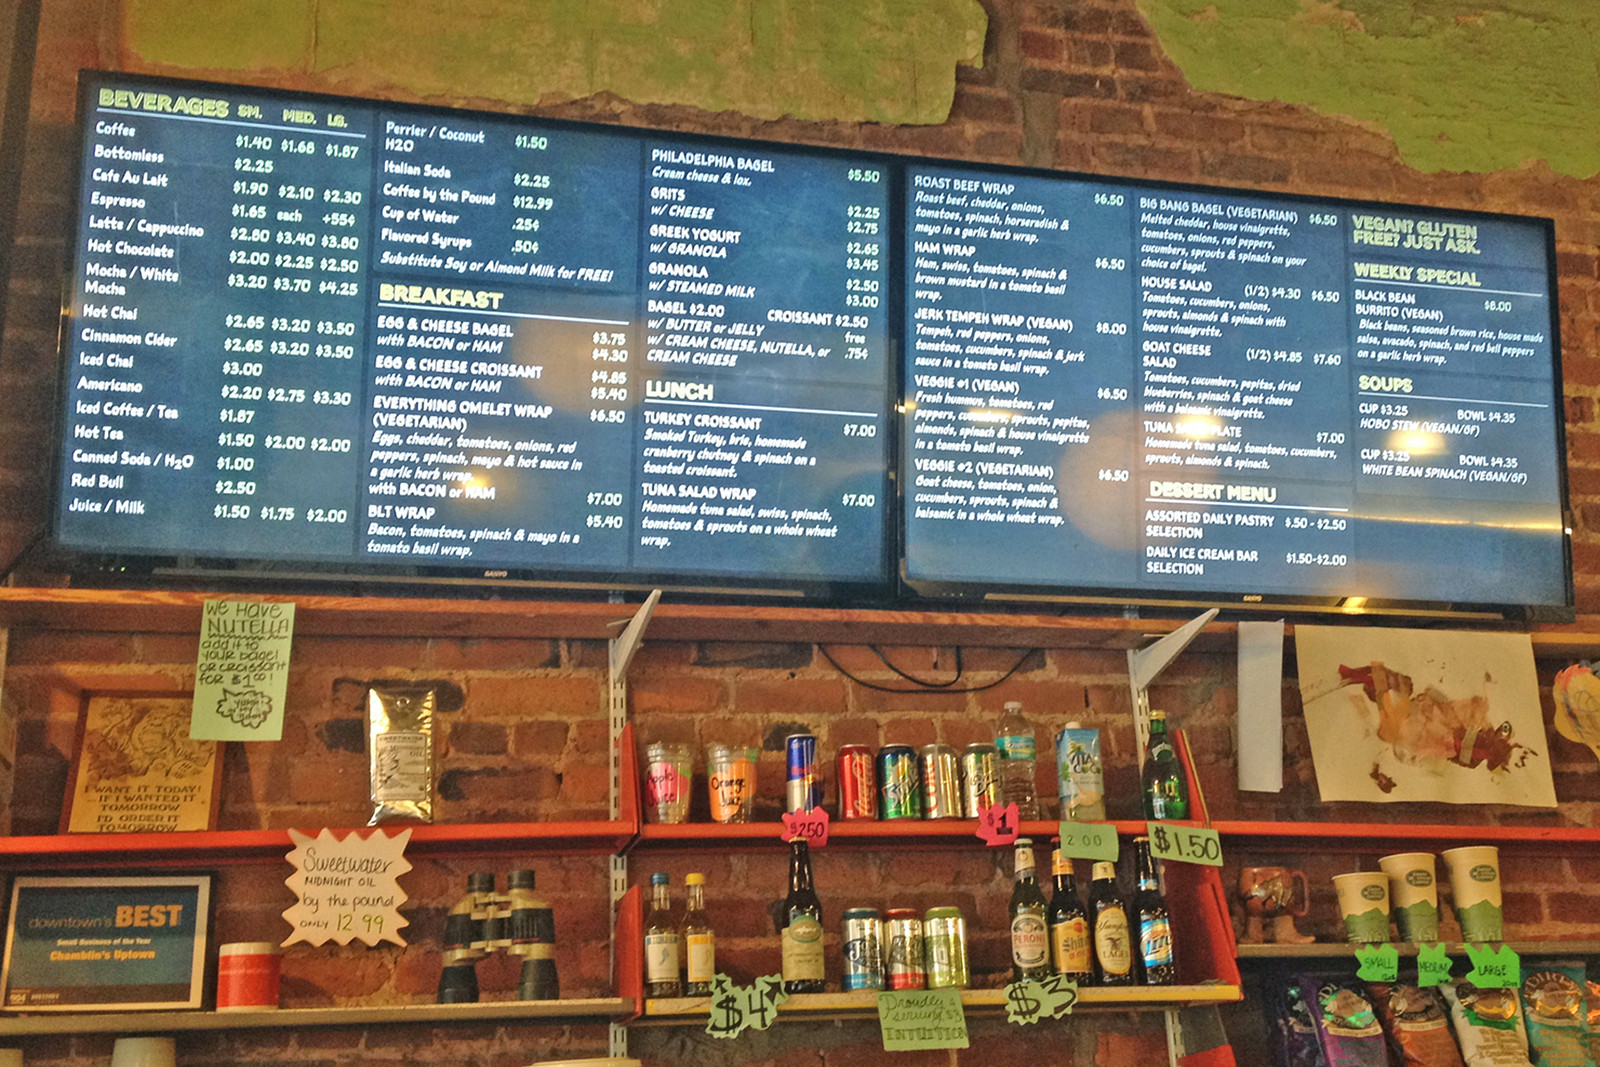 After years of displaying a handwritten chalkboard menu, Chamblin's now boasts a digital dual-screen menu board.